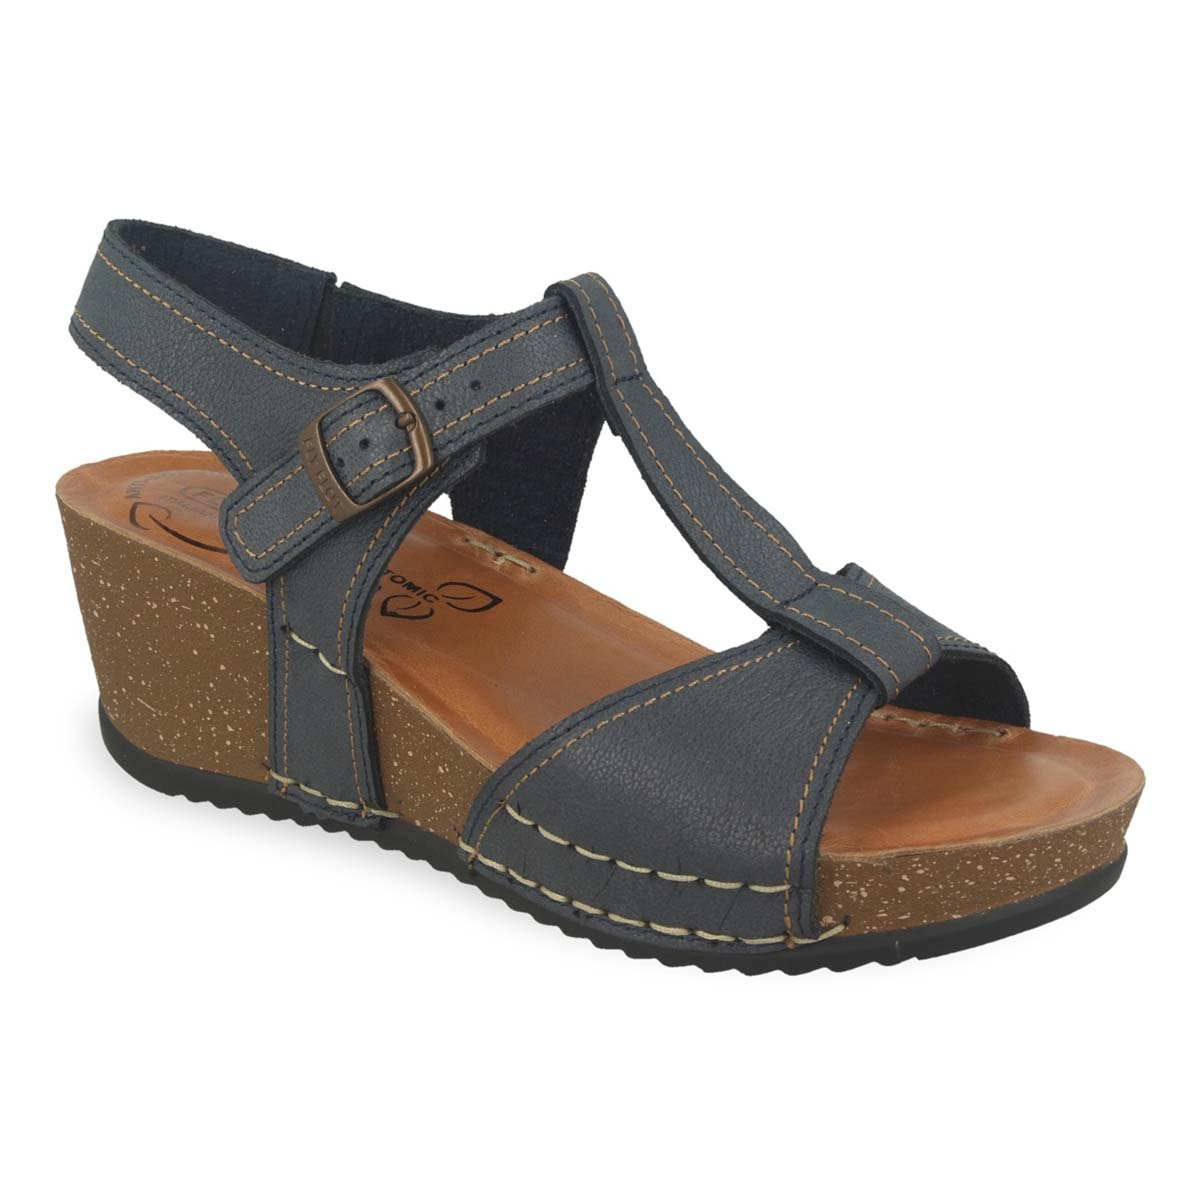 Photo of the Leather Woman Sandal Dark Blue (33e43bg)